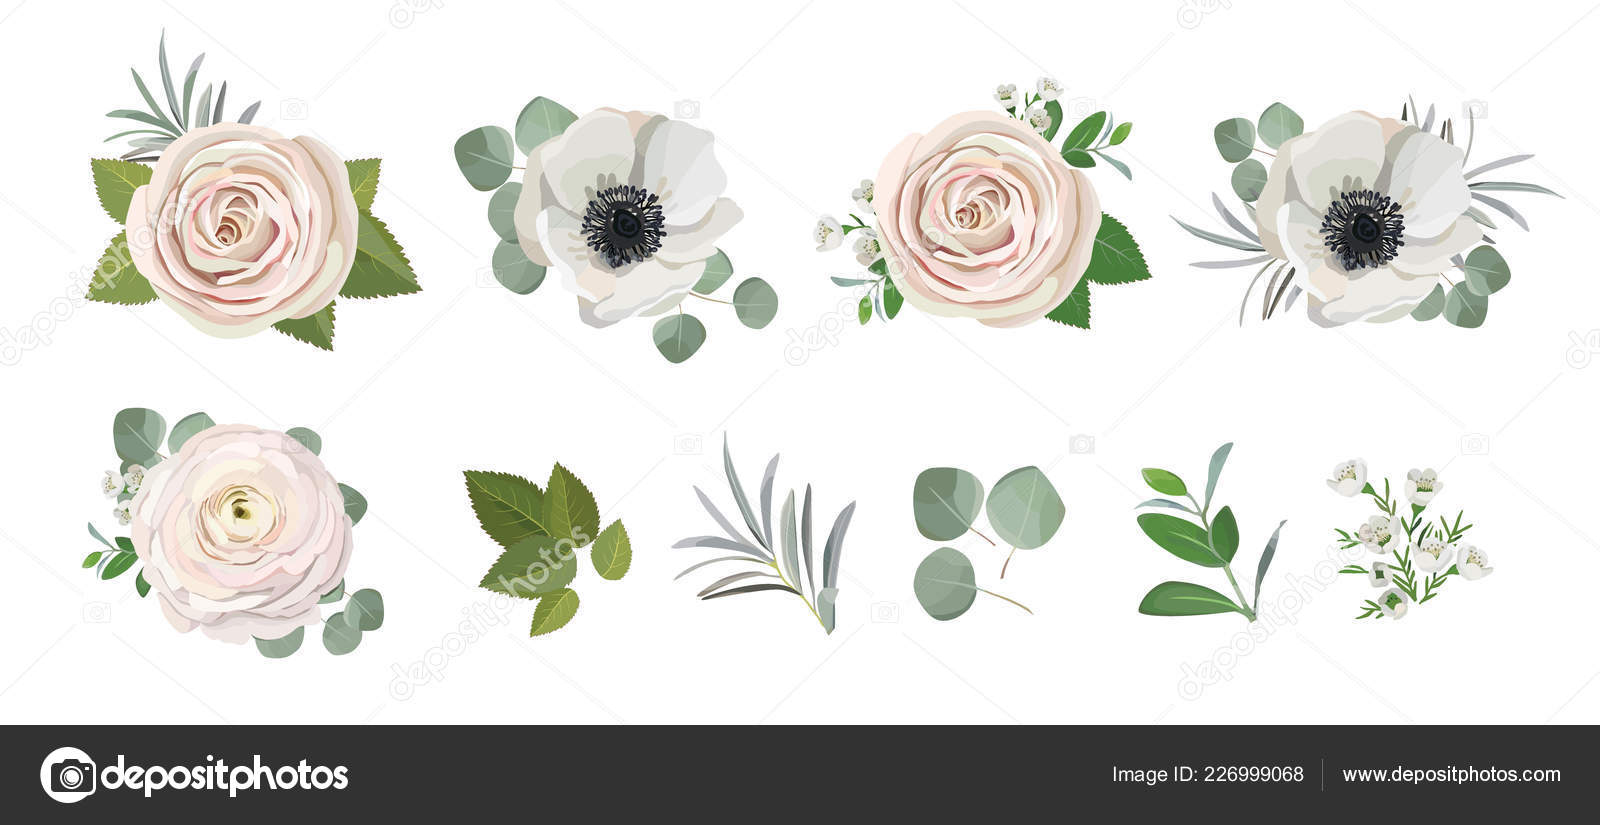 Anemone Ranunculus Eucalyptus Rose Peony Flowers And Eucalyptus Branches Bouquet Vector Illustration Hand Drawn Floral Elements Set For Greeting Cards Wedding Invitations Vector Image By C Magic Lola Vector Stock 226999068